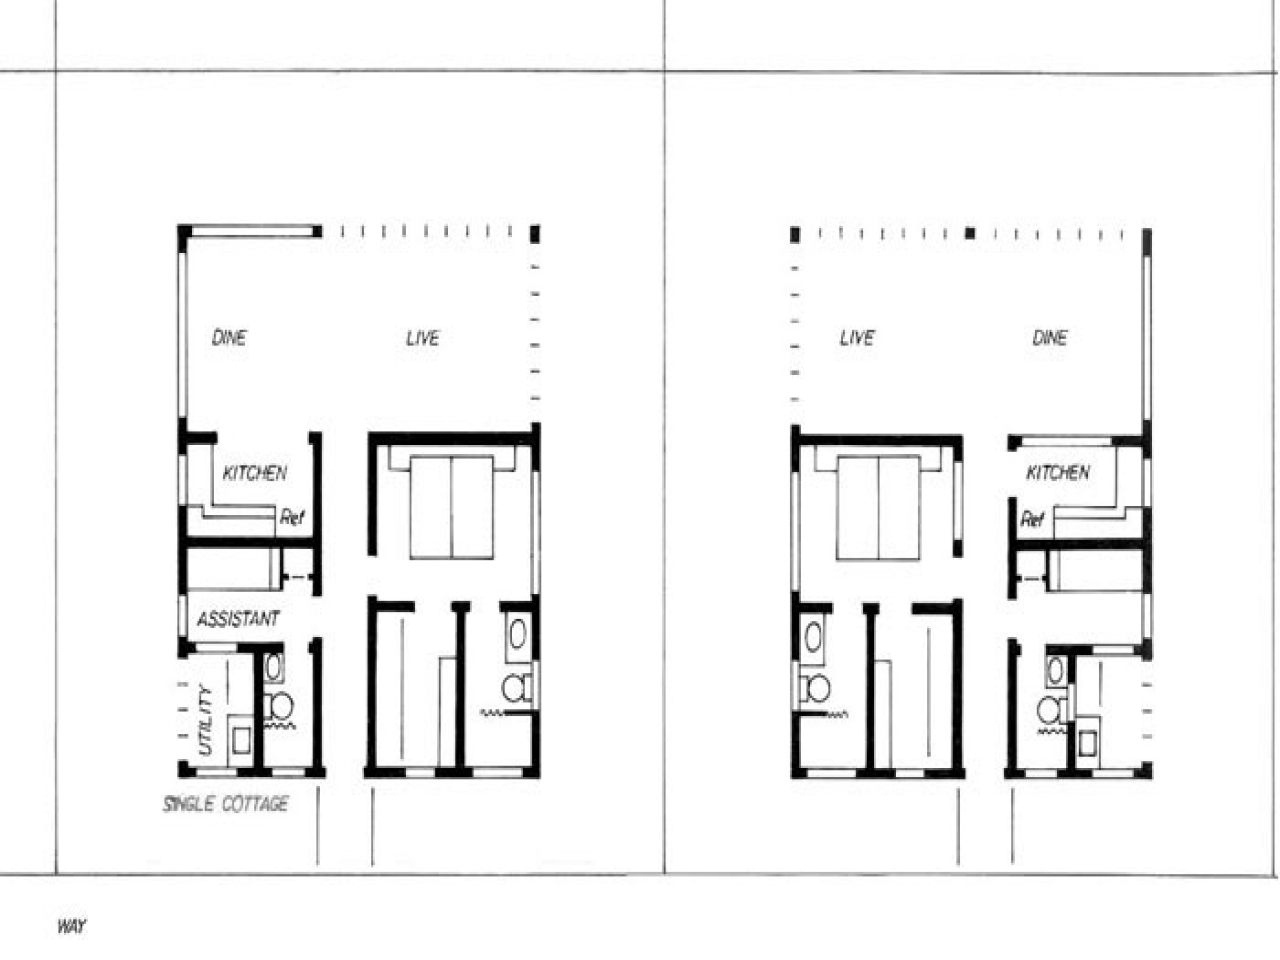 Cottage cabin bedroom 1 bedroom cottage house plans one for 1 bedroom cottage house plans